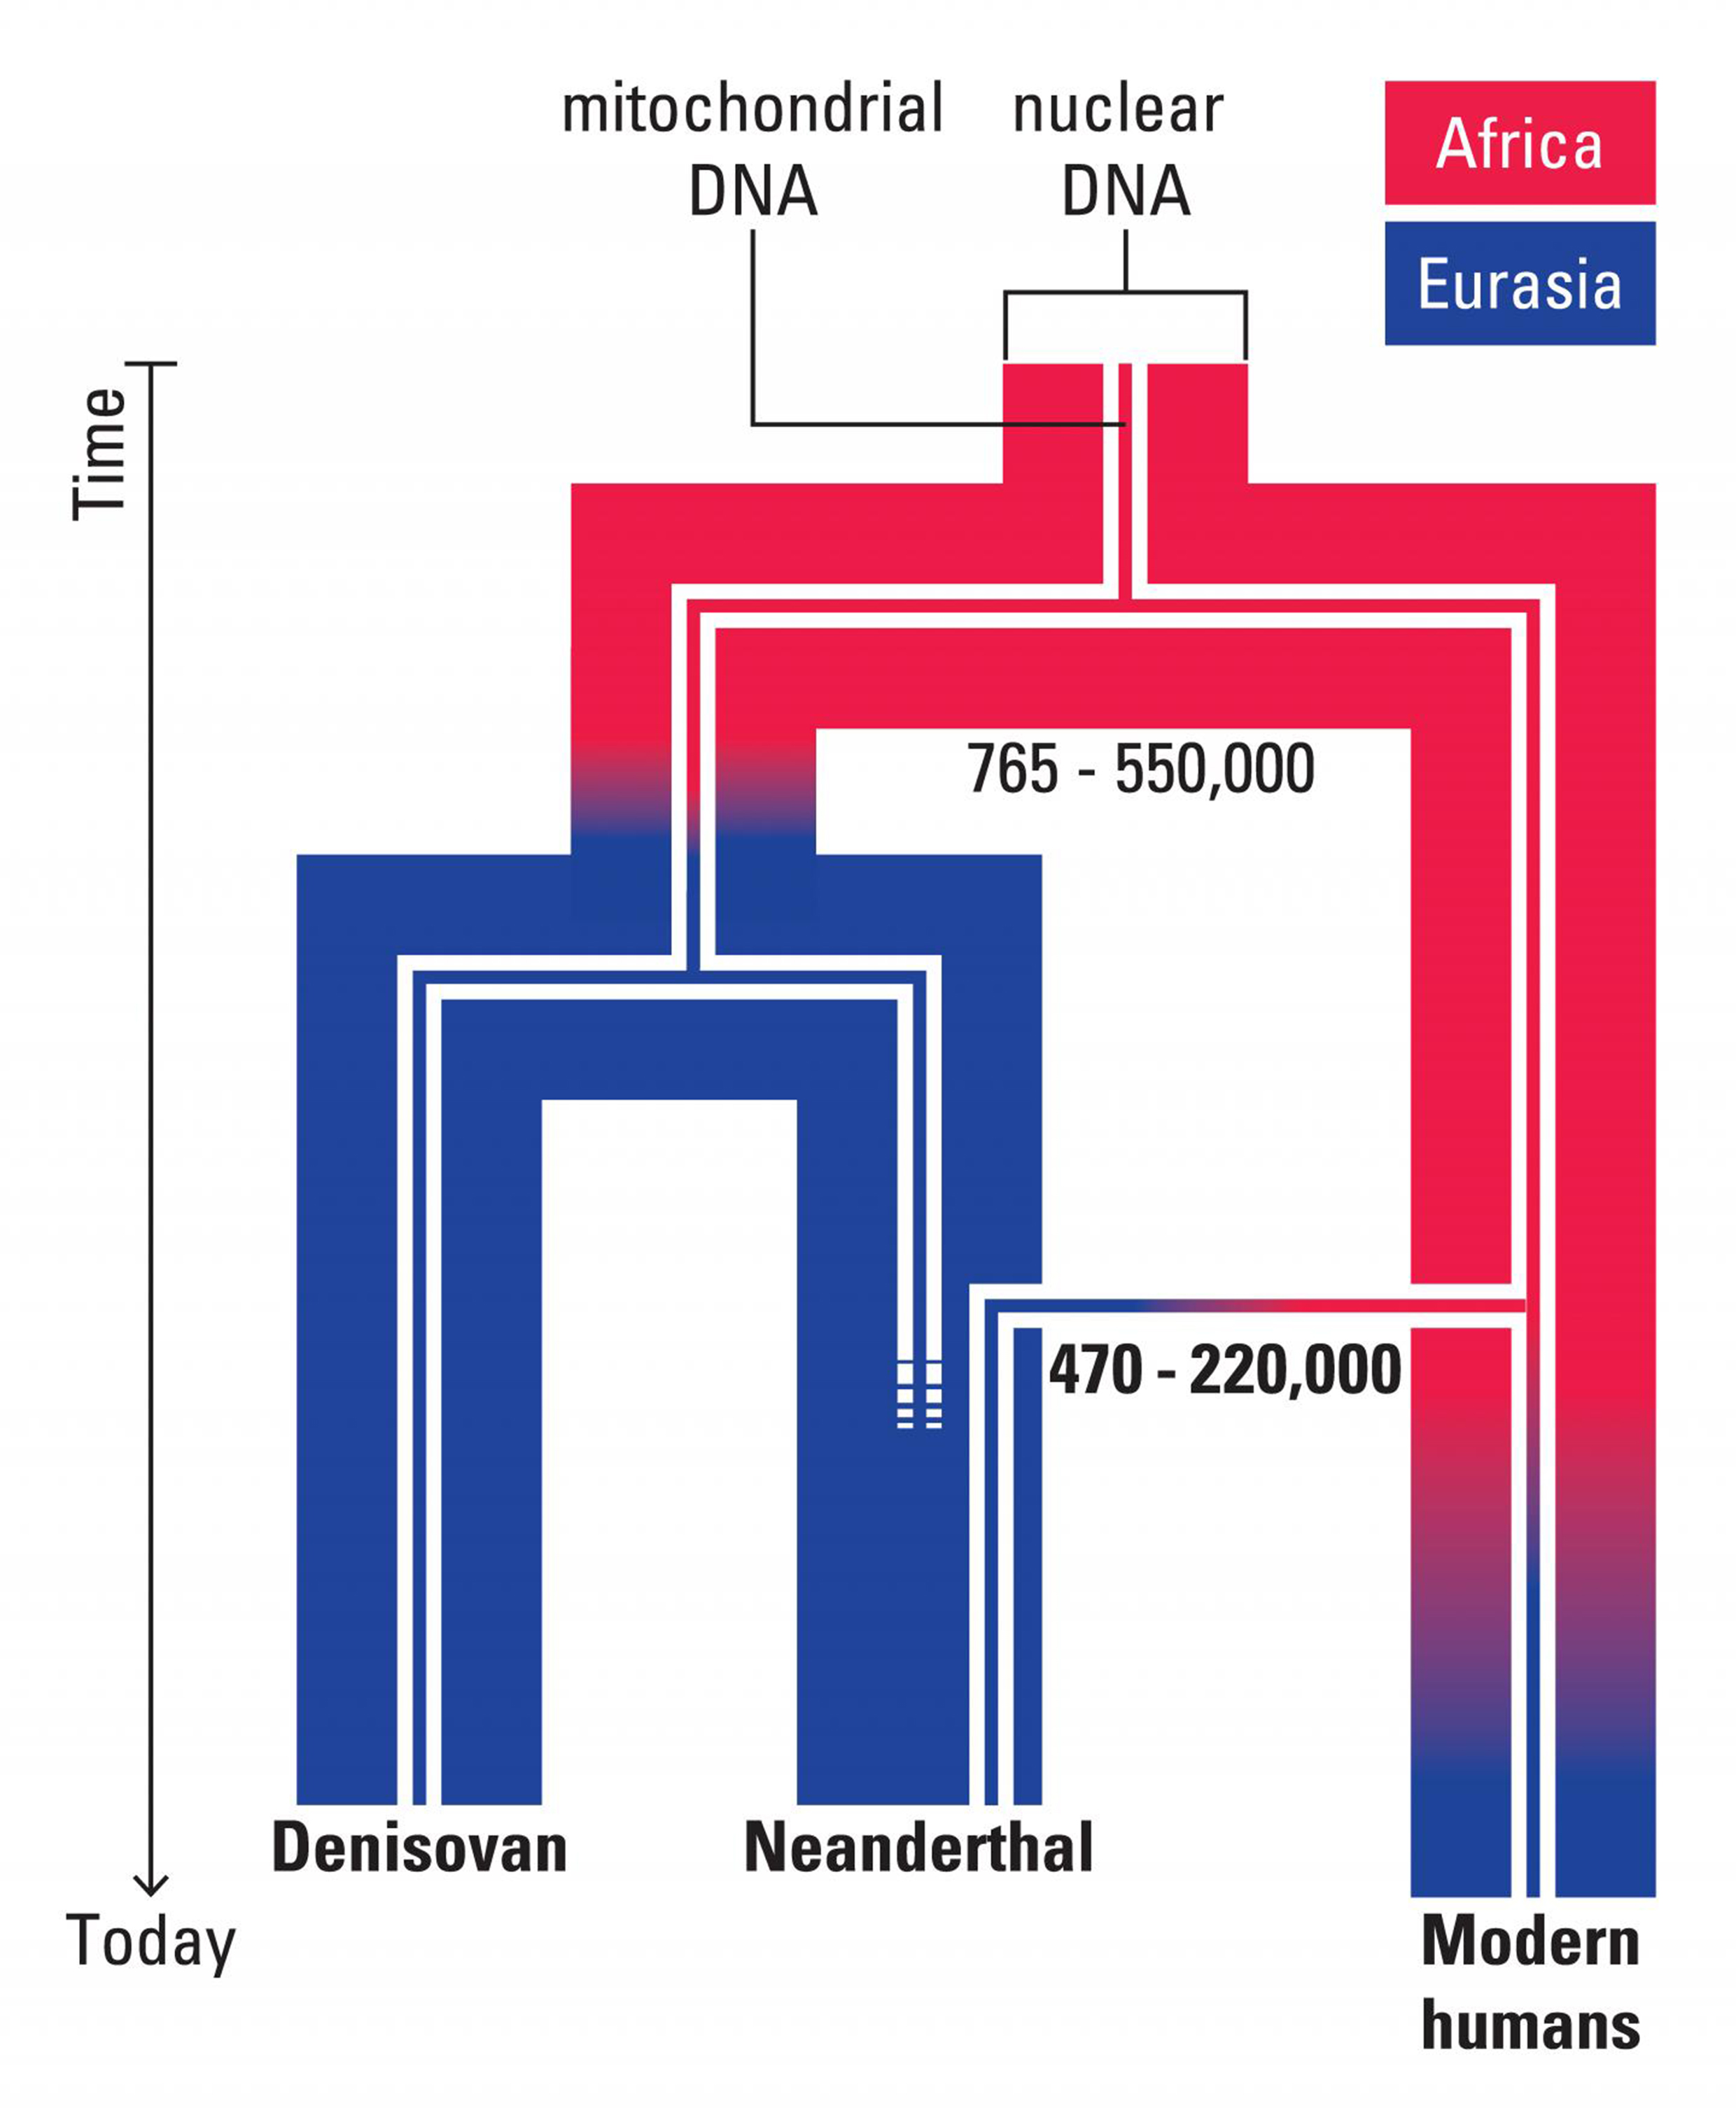 A representation of the evolutionary scenario for mitochondrial and nuclear DNA in archaic and modern humans.